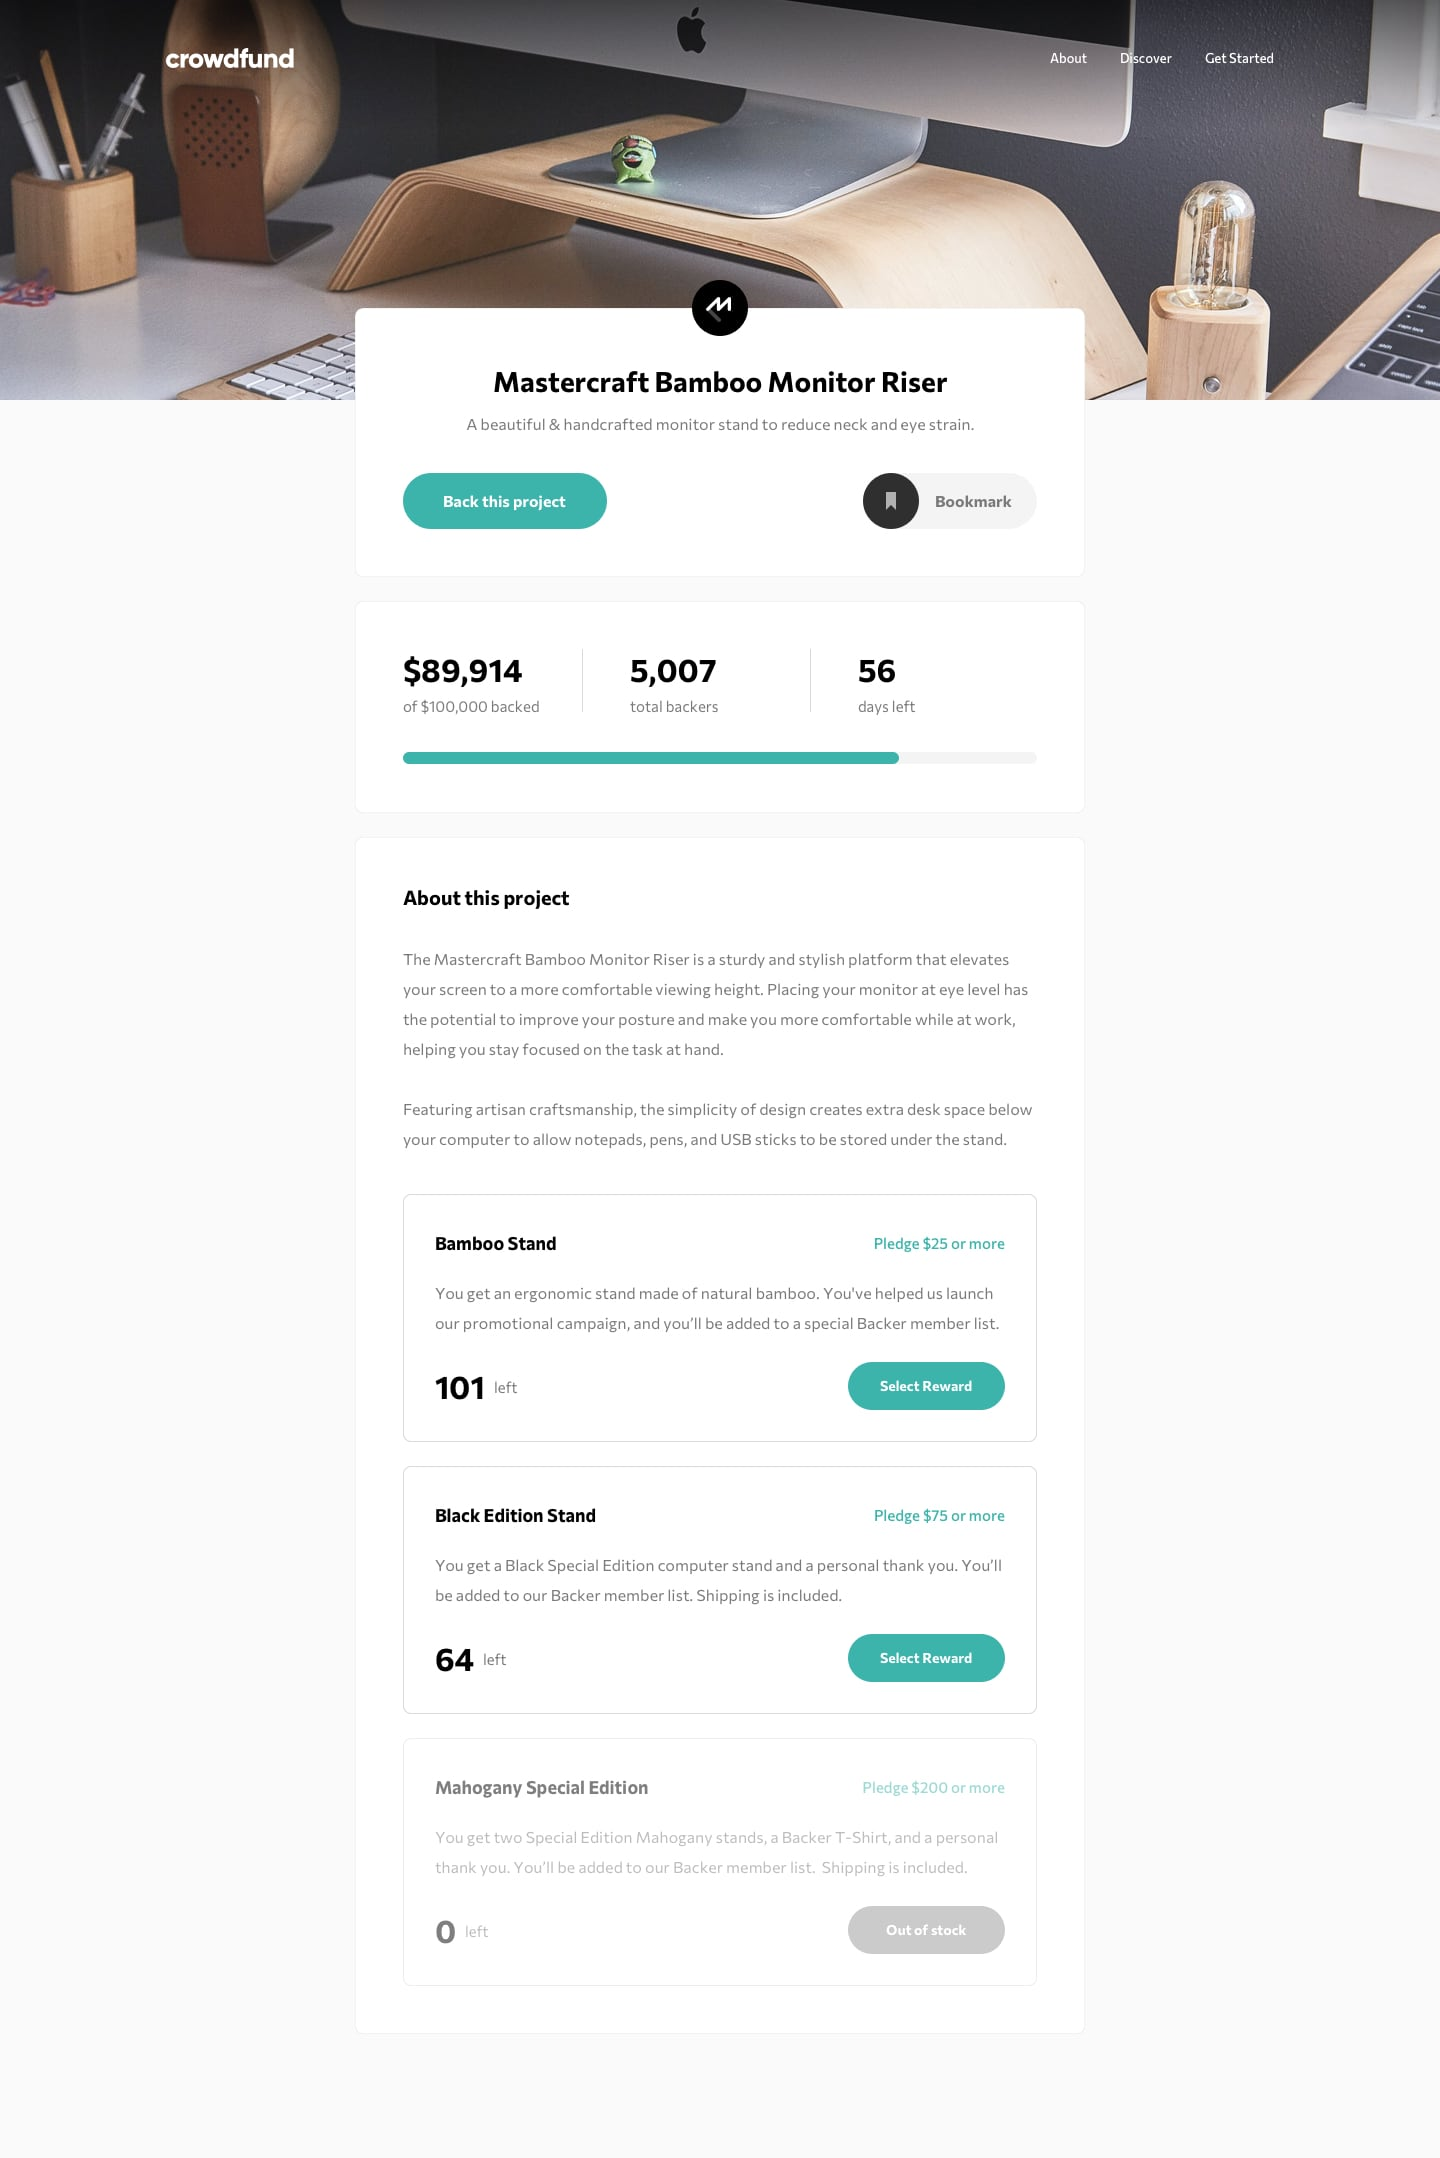 Design preview for Crowdfunding product page coding challenge